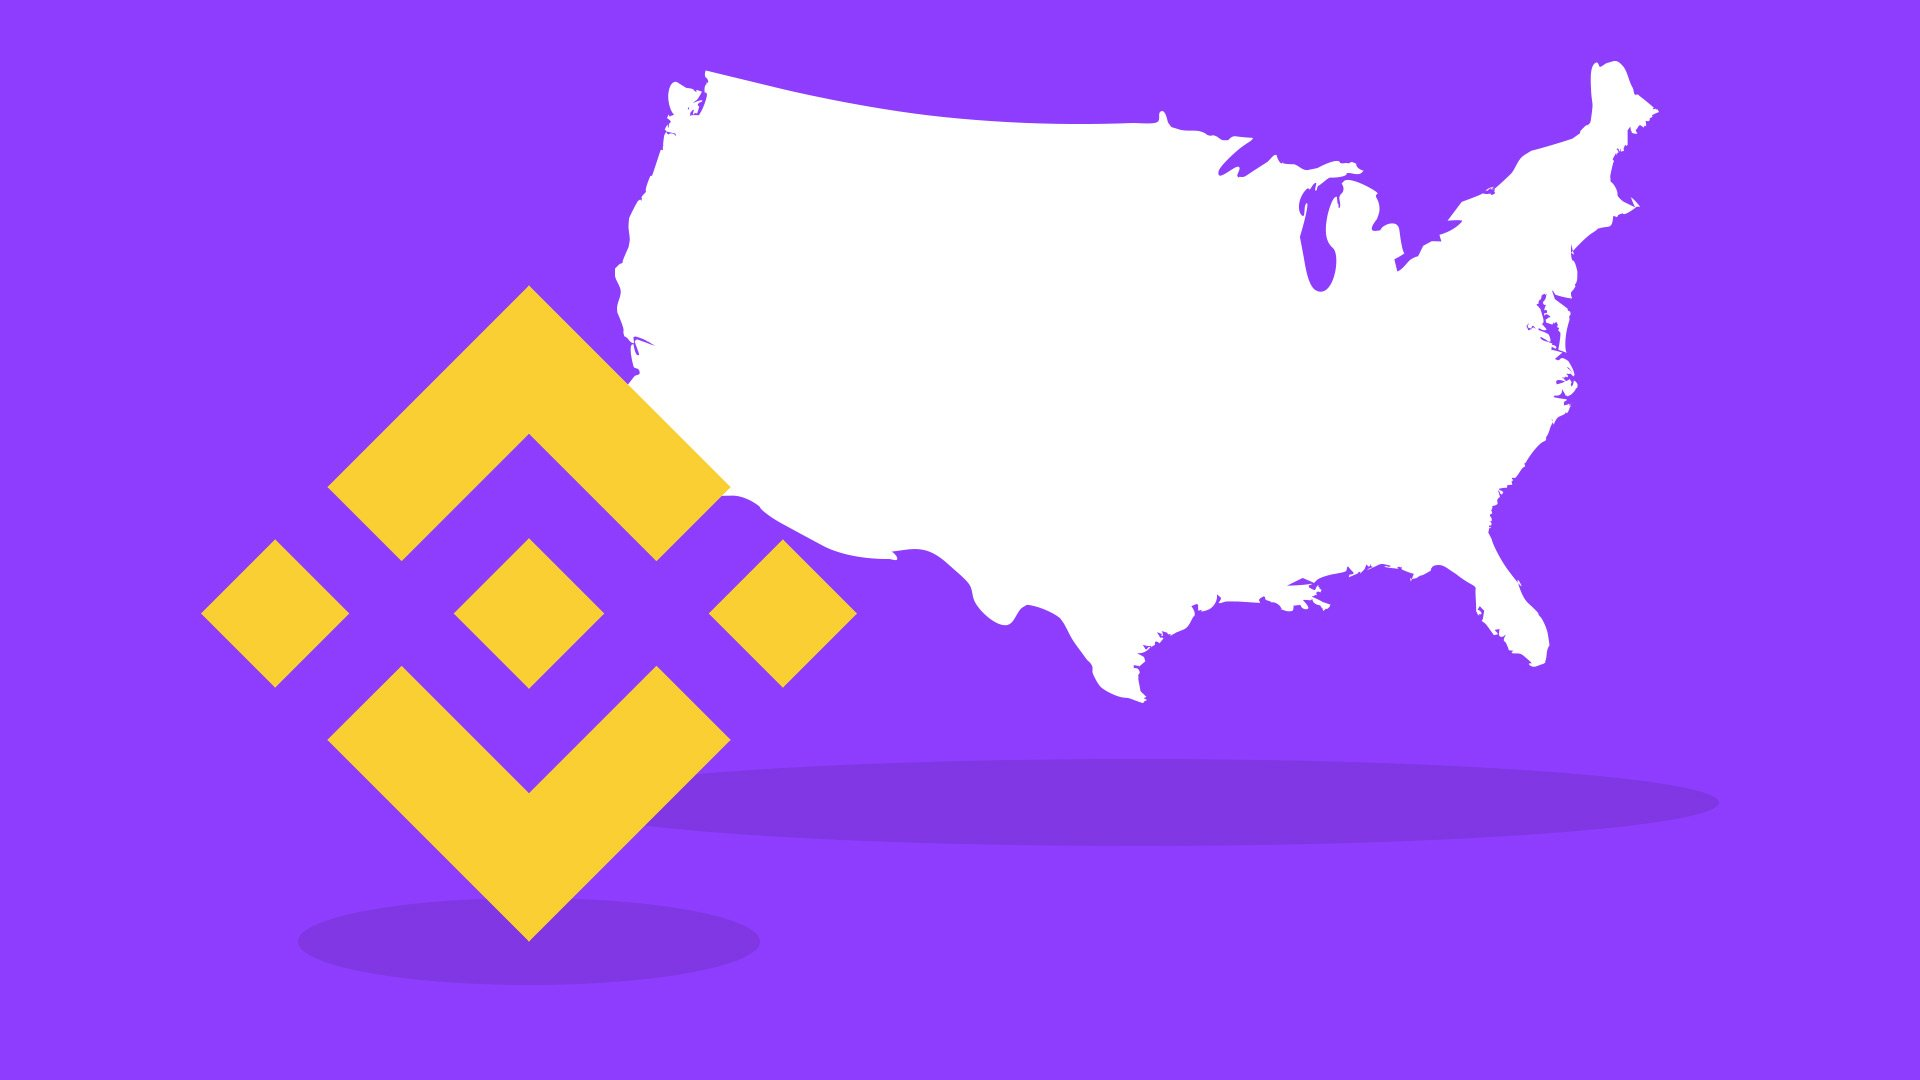 Binance wants to launch futures trading in the U.S., possibly through buying a licensed firm